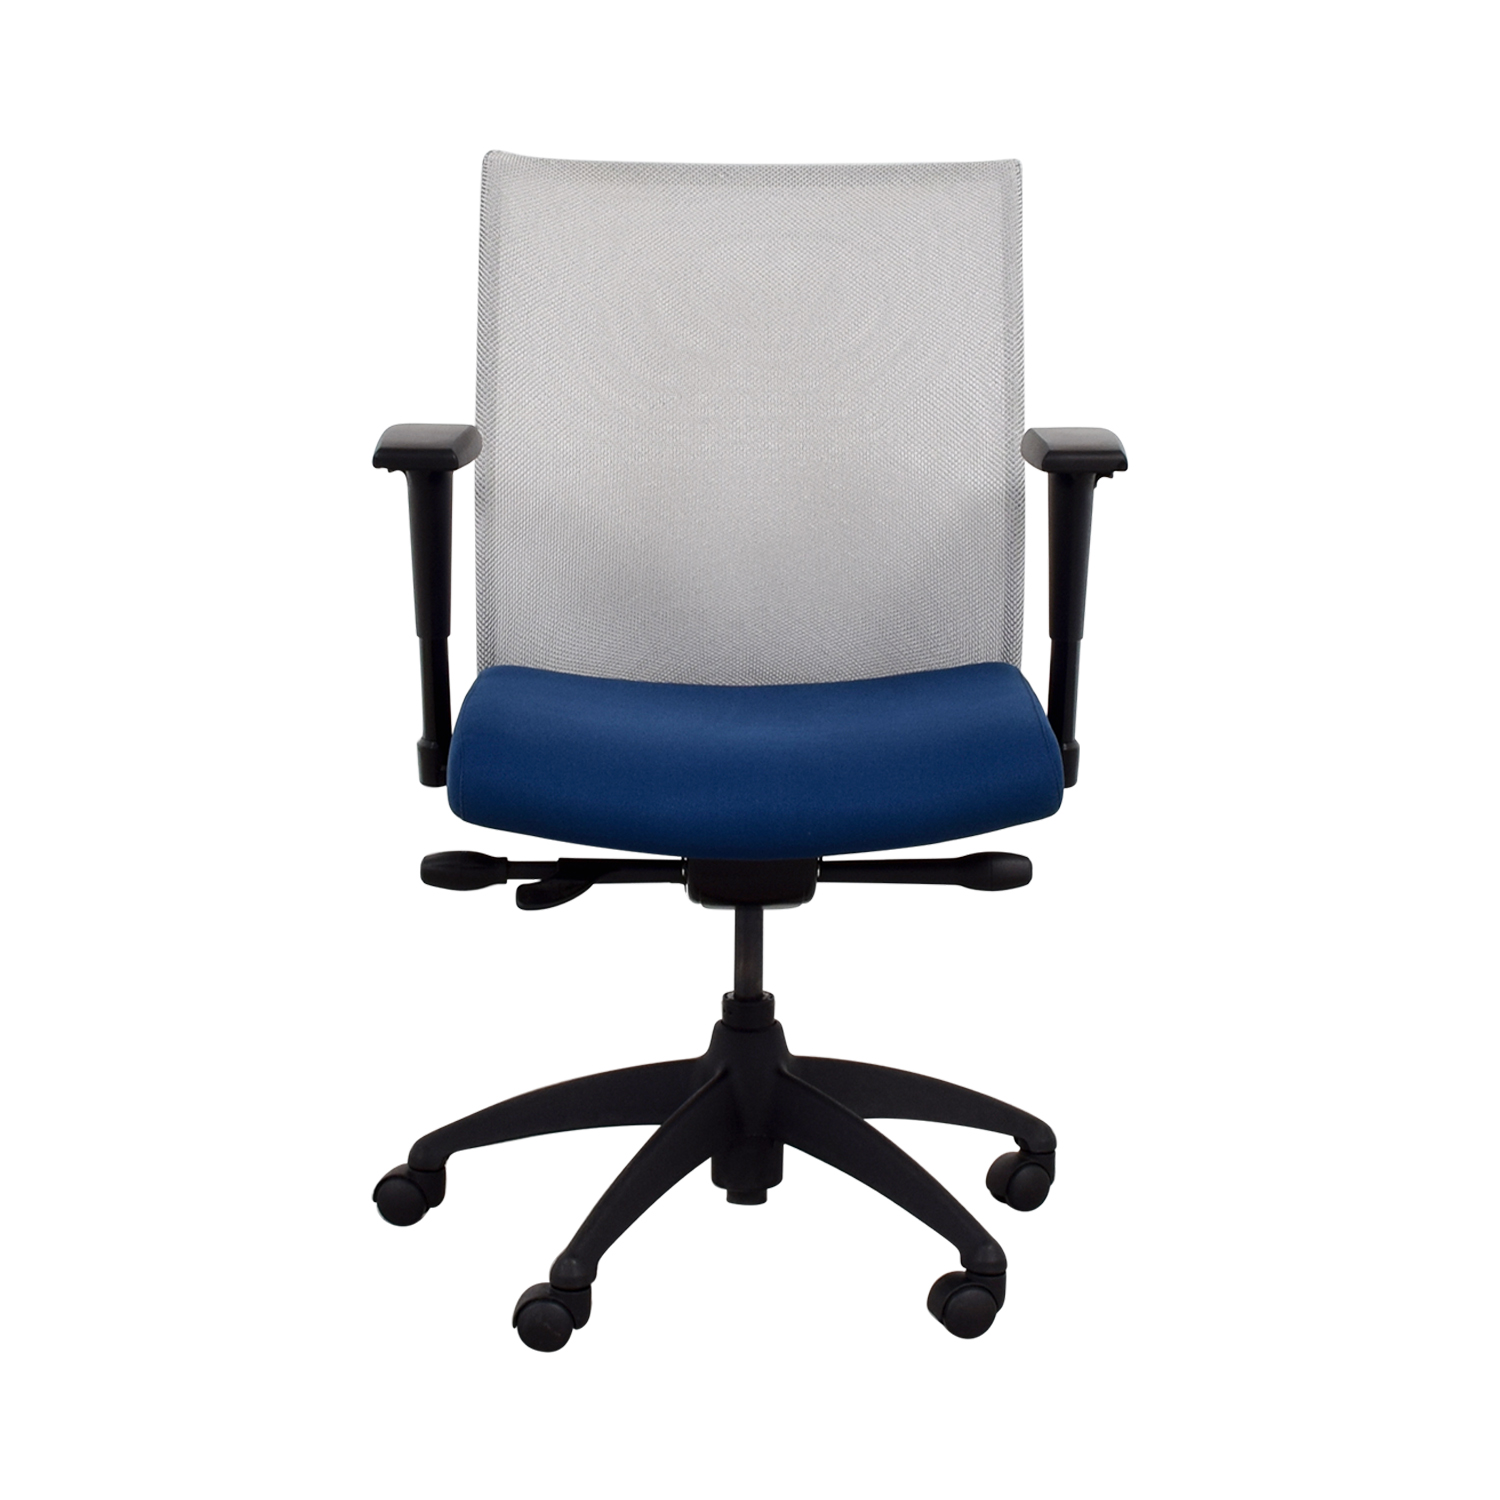 Stylex Stylex Adjustable Arm Blue Task Chair coupon